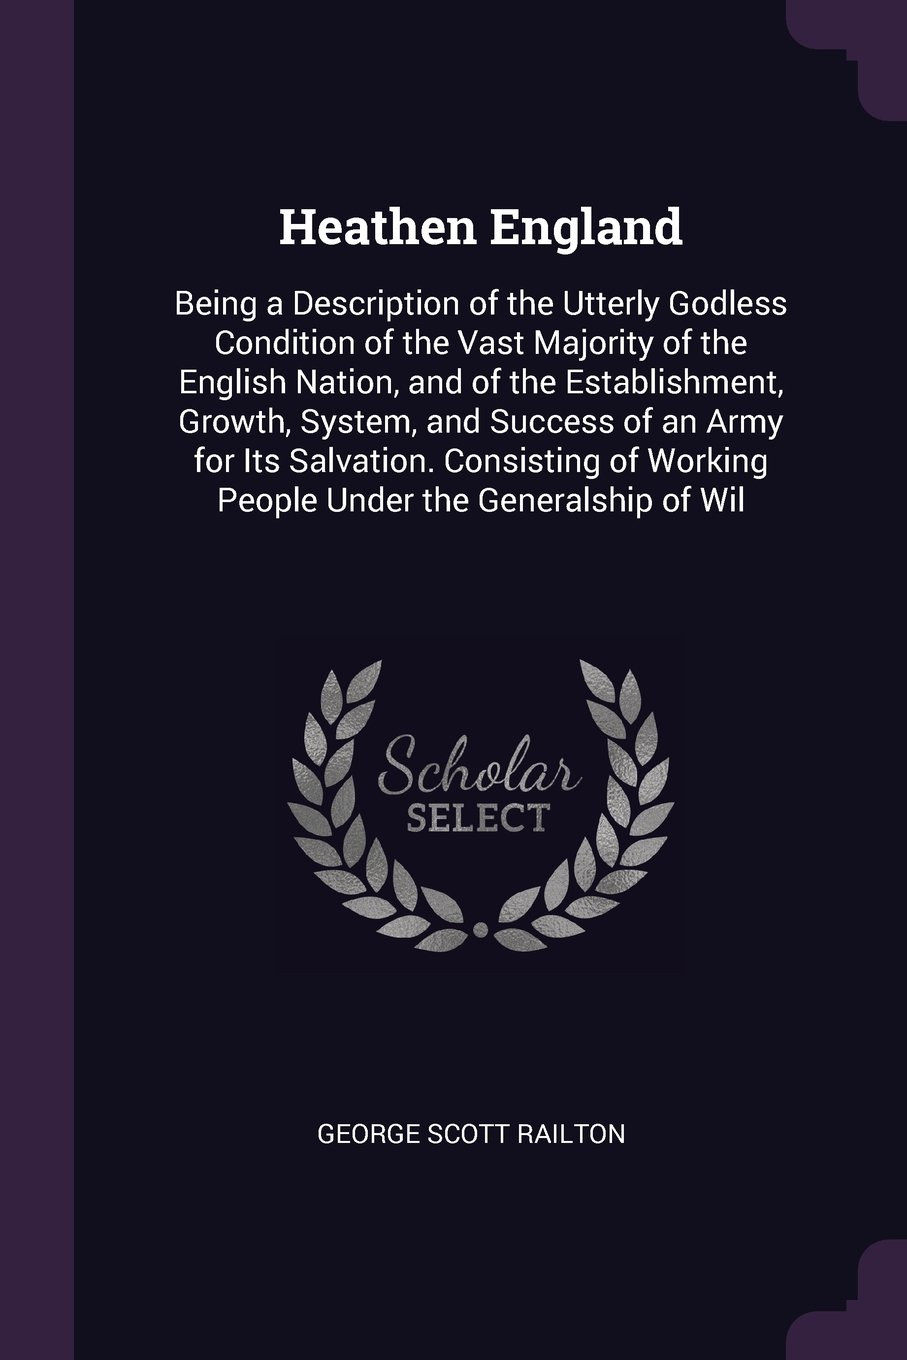 Download Heathen England: Being a Description of the Utterly Godless Condition of the Vast Majority of the English Nation, and of the Establishment, Growth, ... Working People Under the Generalship of Wil PDF